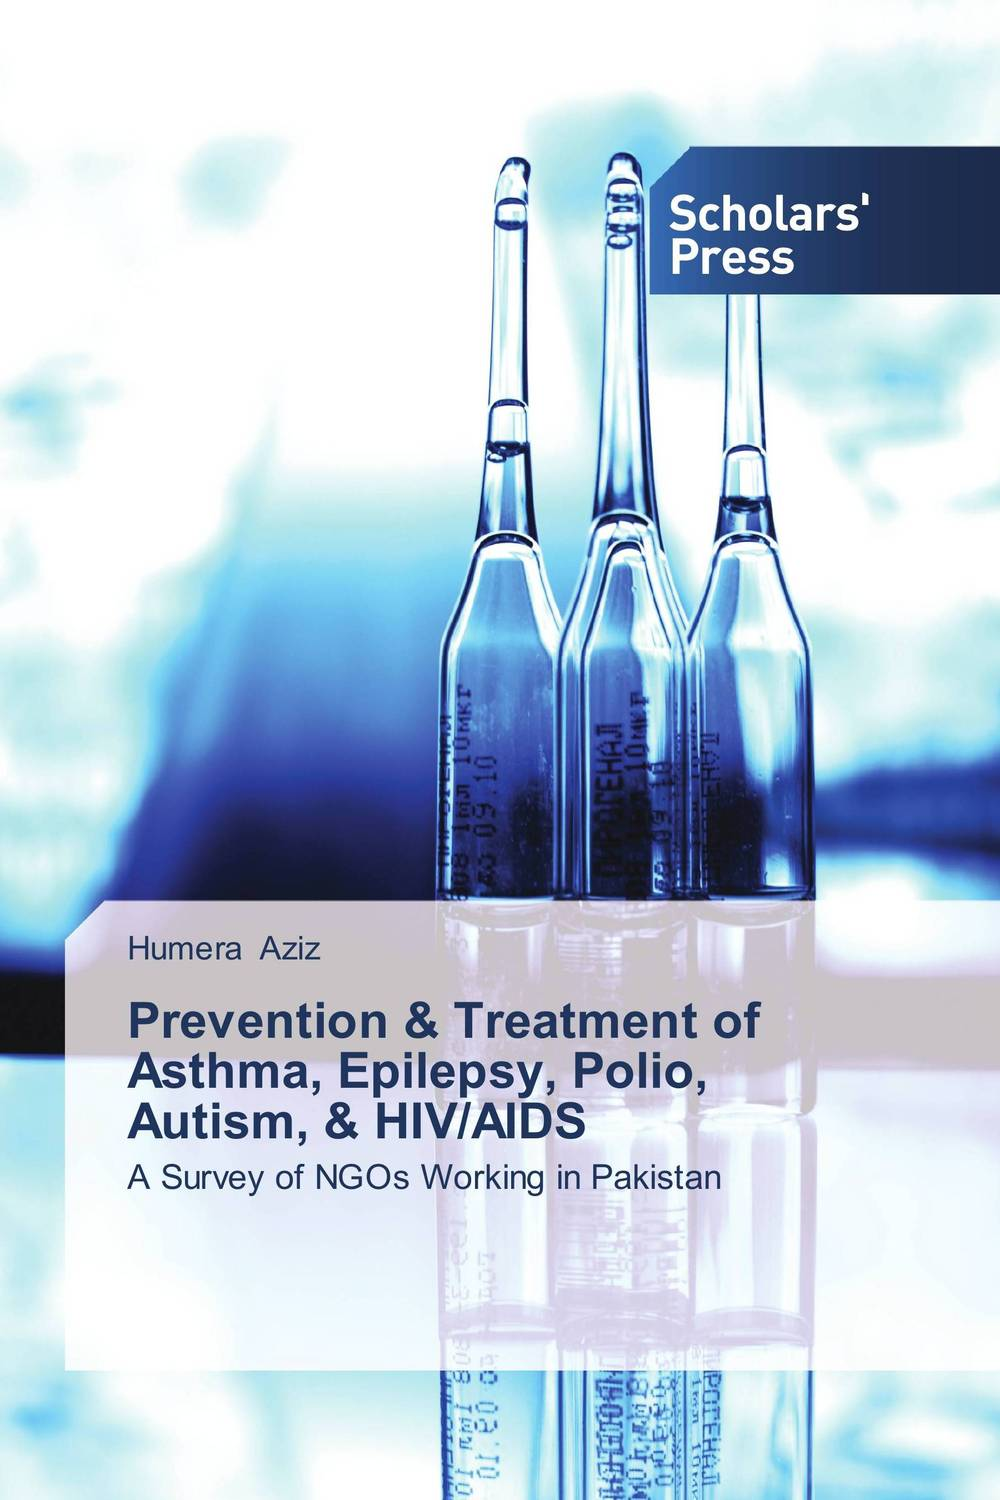 Prevention & Treatment of Asthma, Epilepsy, Polio, Autism, & HIV/AIDS ranju bansal rakesh yadav and gulshan kumar asthma molecular basis and treatment approaches